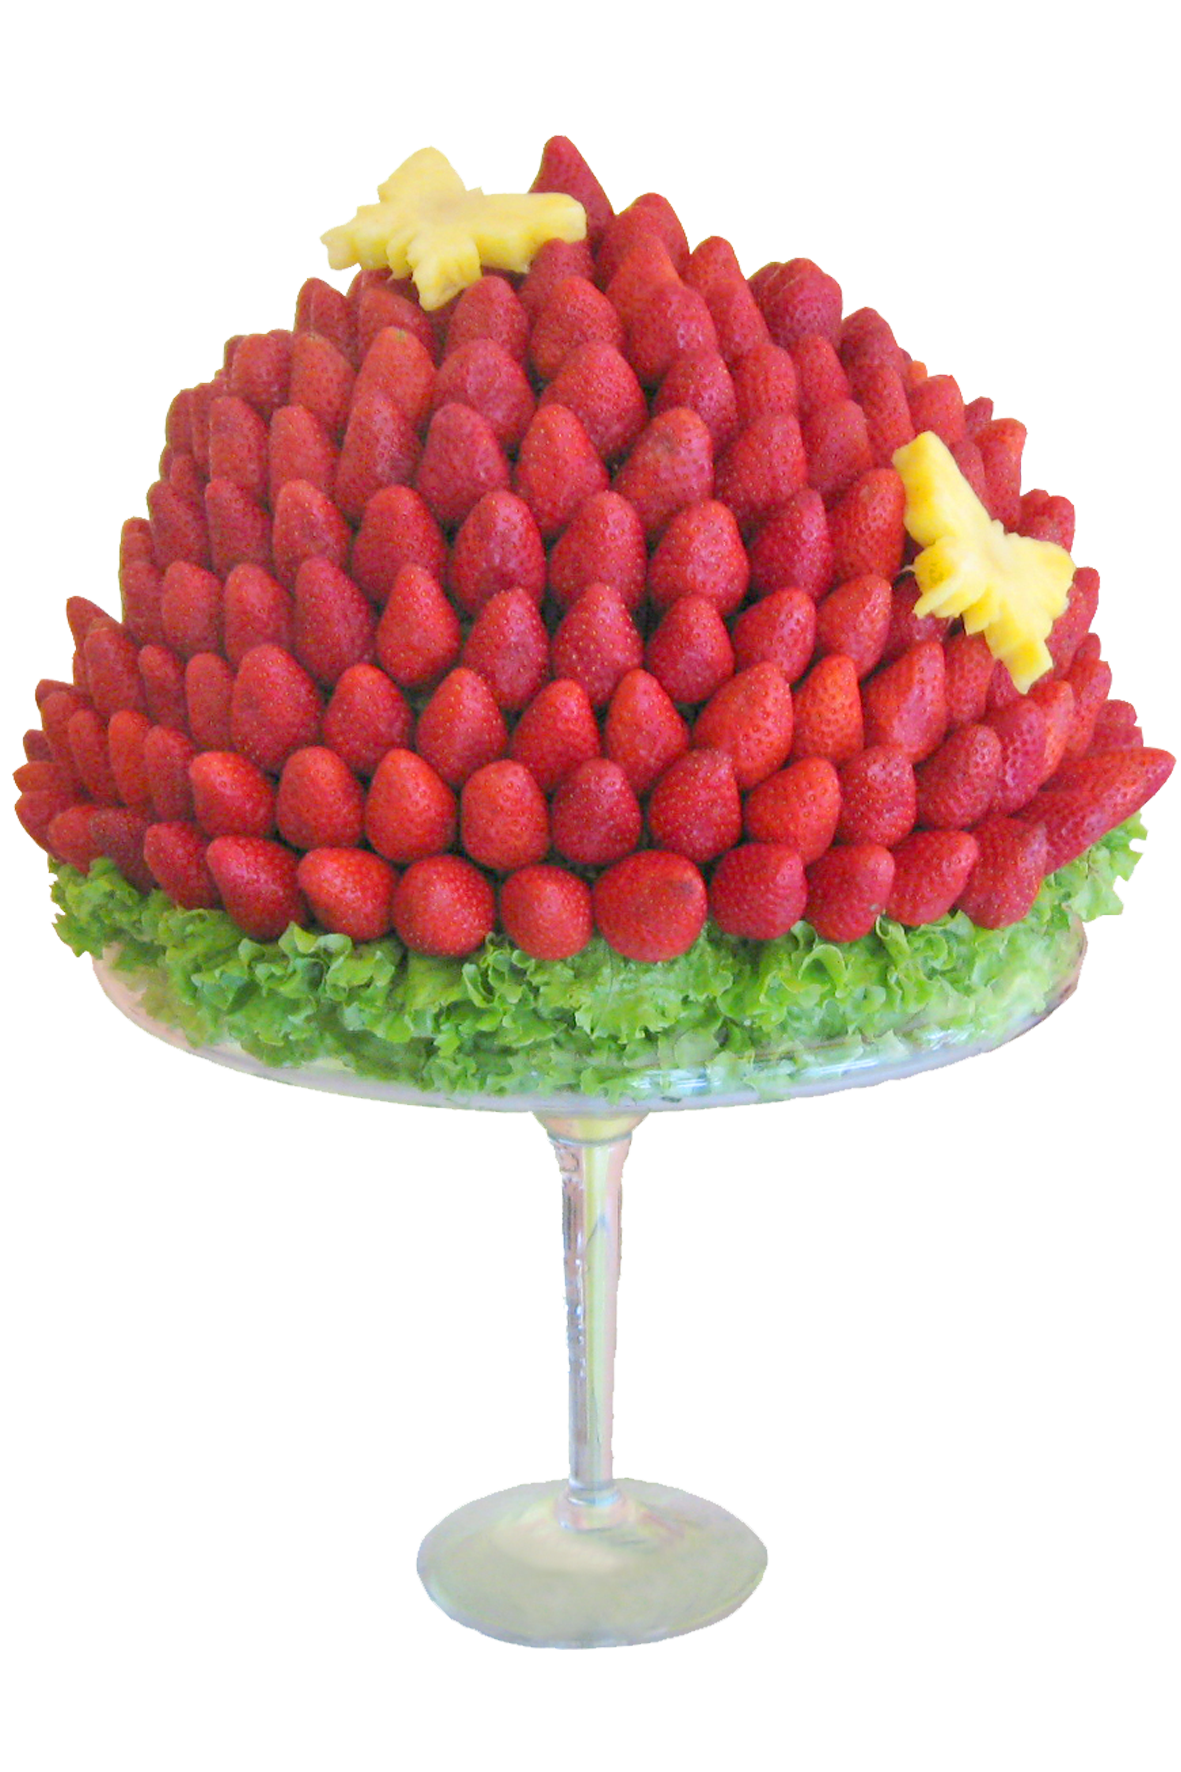 FRUIT ART - BOUQUETTES OF FRUIT  - FEATURED MODELS